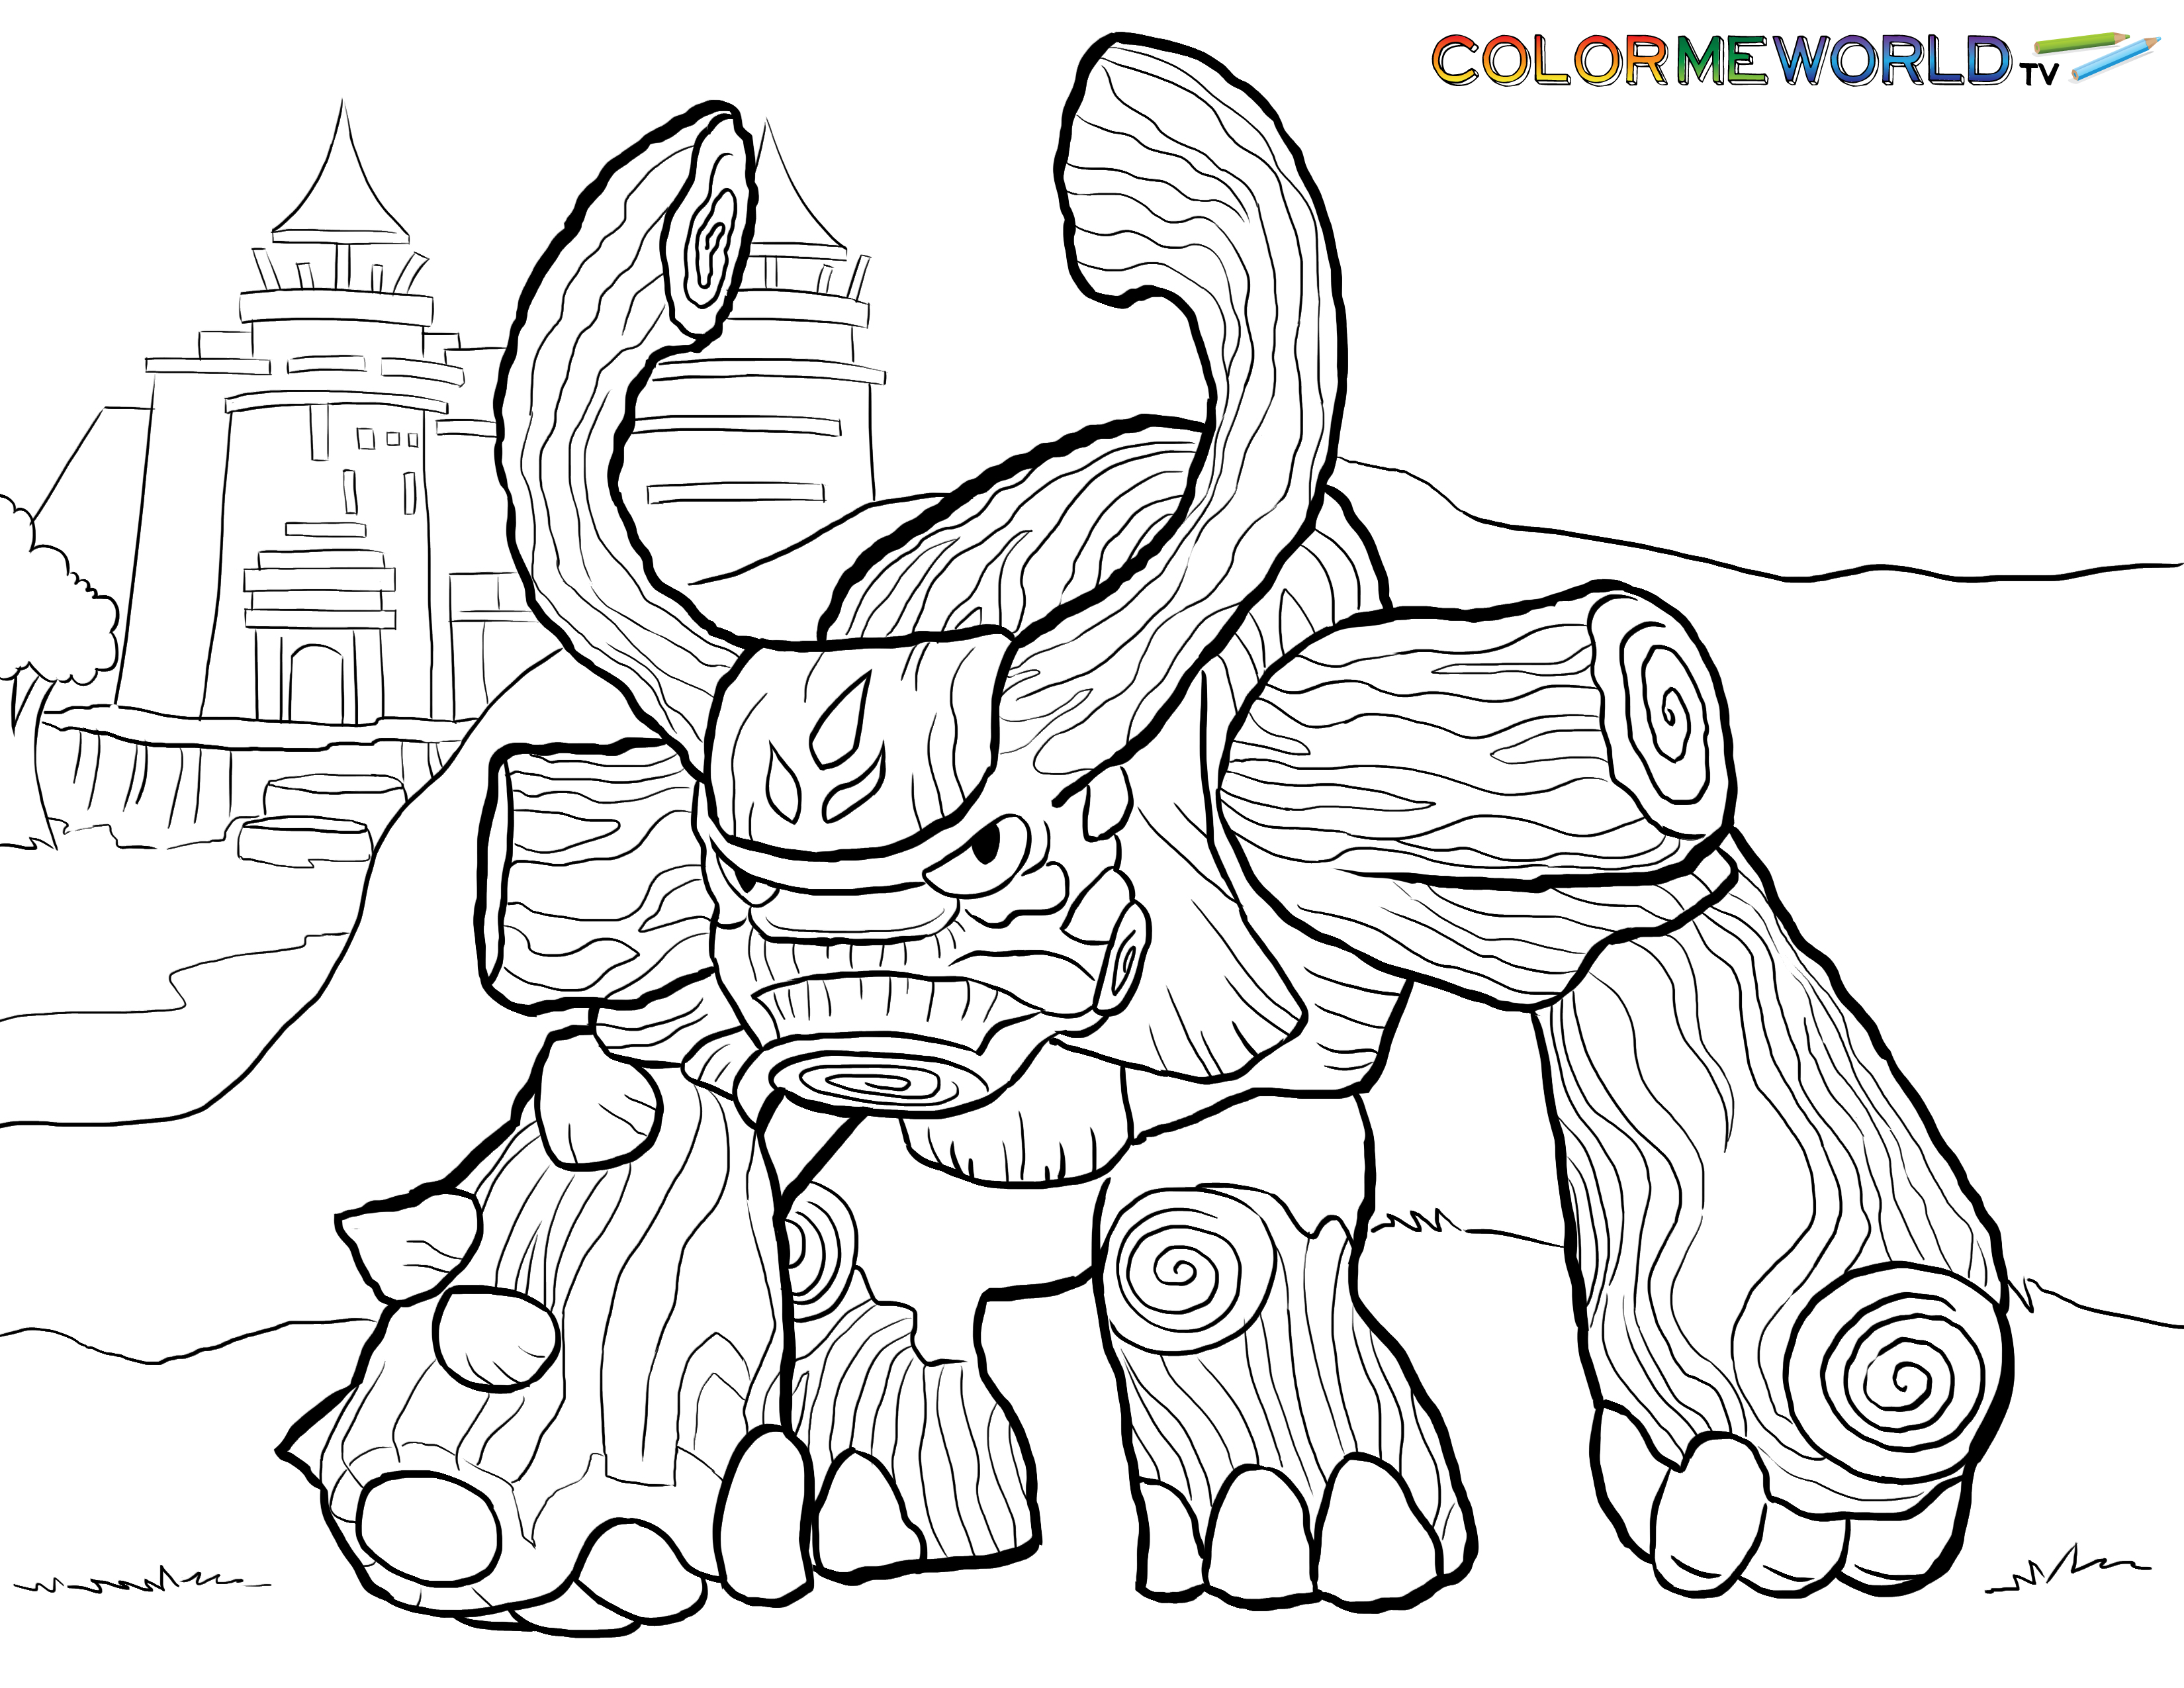 Skylanders coloring pages for boys ~ Tree Rex Coloring Page | Skylander's Coloring Pages ...